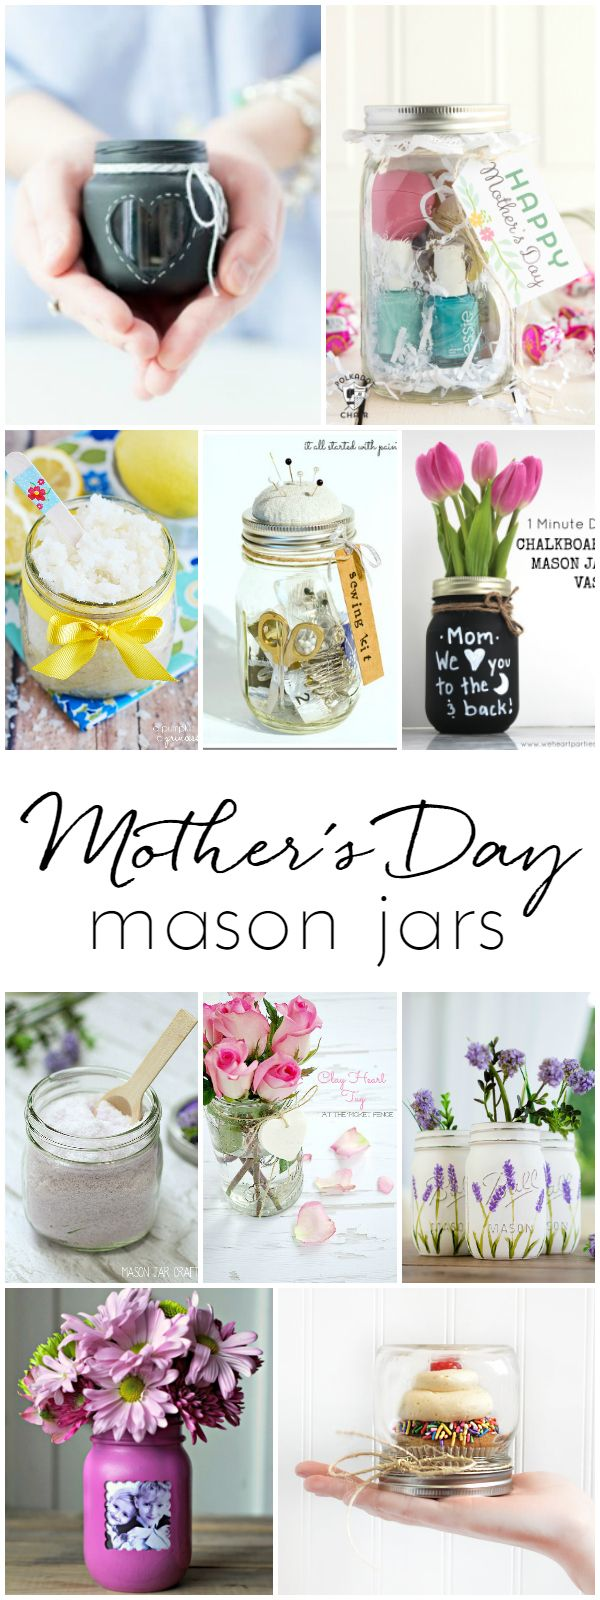 Mother's Day Gift Ideas in Mason Jars - Homemade Mother's Day Gift Ideas - Mason jar gift ideas for Mother's Day - 20 Mother's Day gift ideas - Kids crafts for Mother's Day